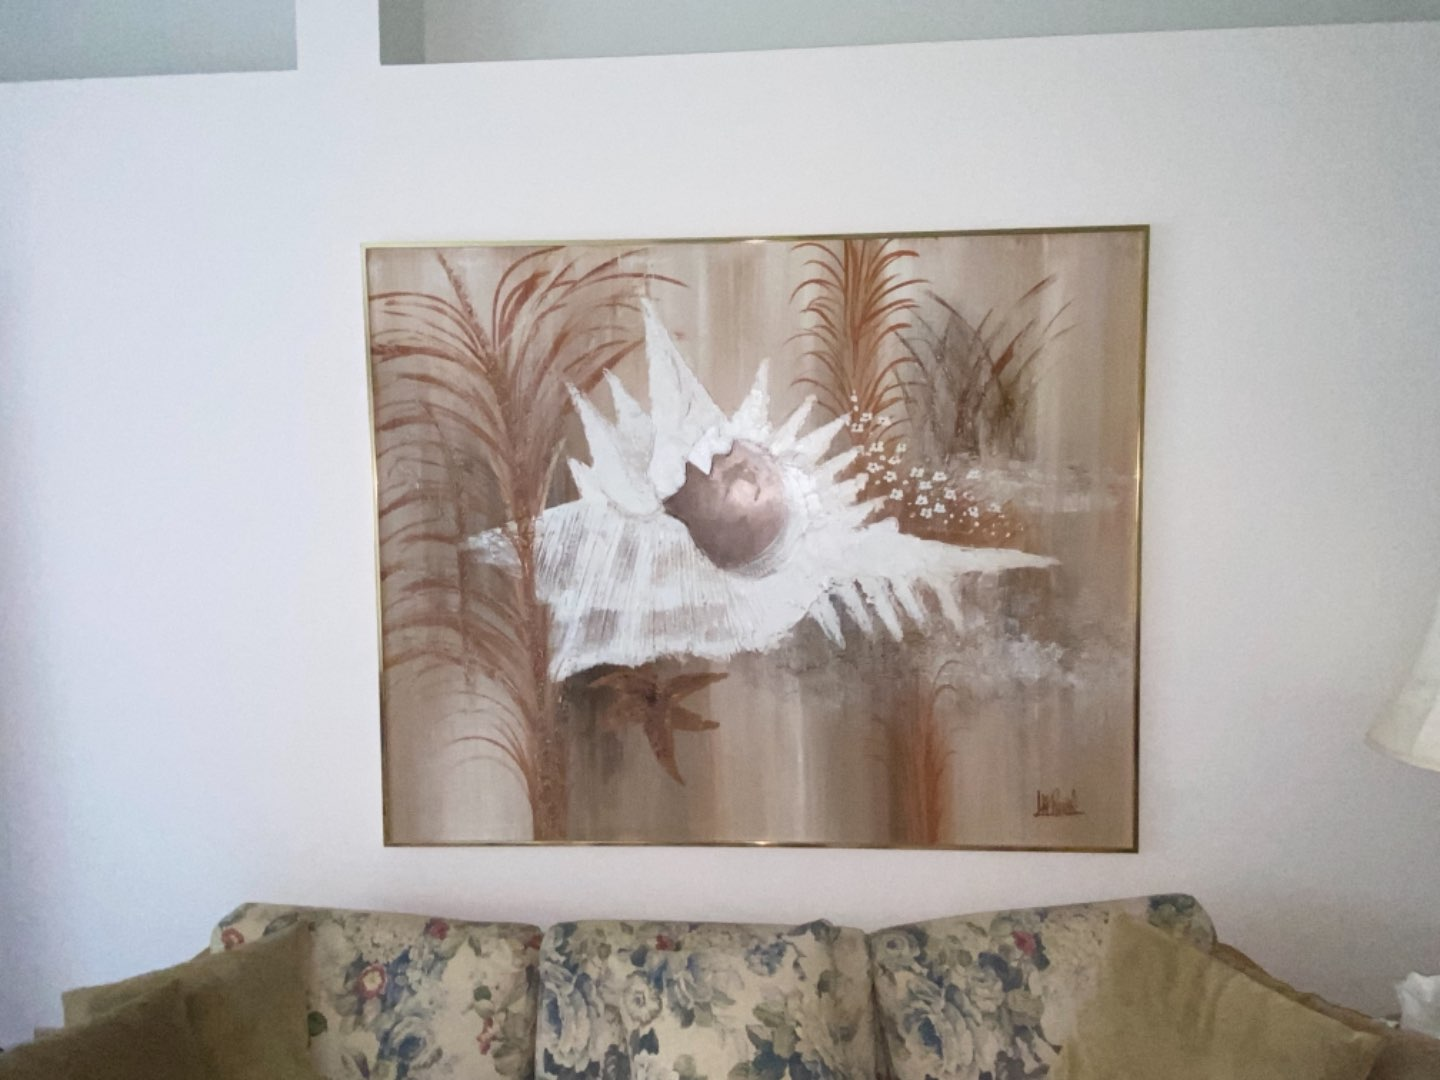 Lot # 229 1980s Abstract Shell Painting by Lee Reynolds, Framed